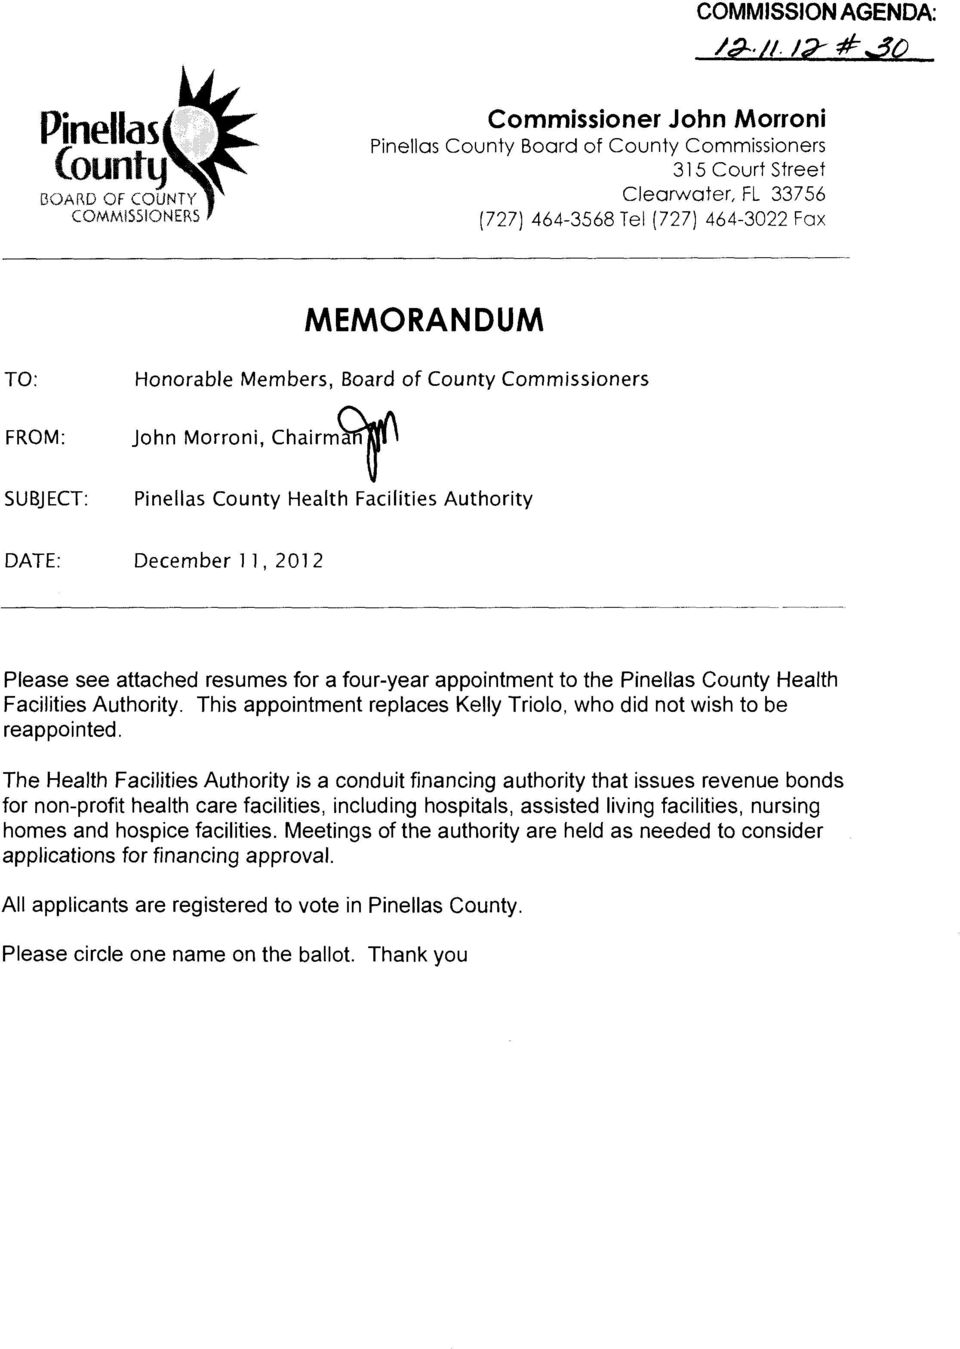 Board of County Commissioners John Morroni, Chairm~ SUBJECT: Pinellas County Health Facilities Authority DATE: December 11, 201 2 ---------- Please see attached resumes for a four-year appointment to